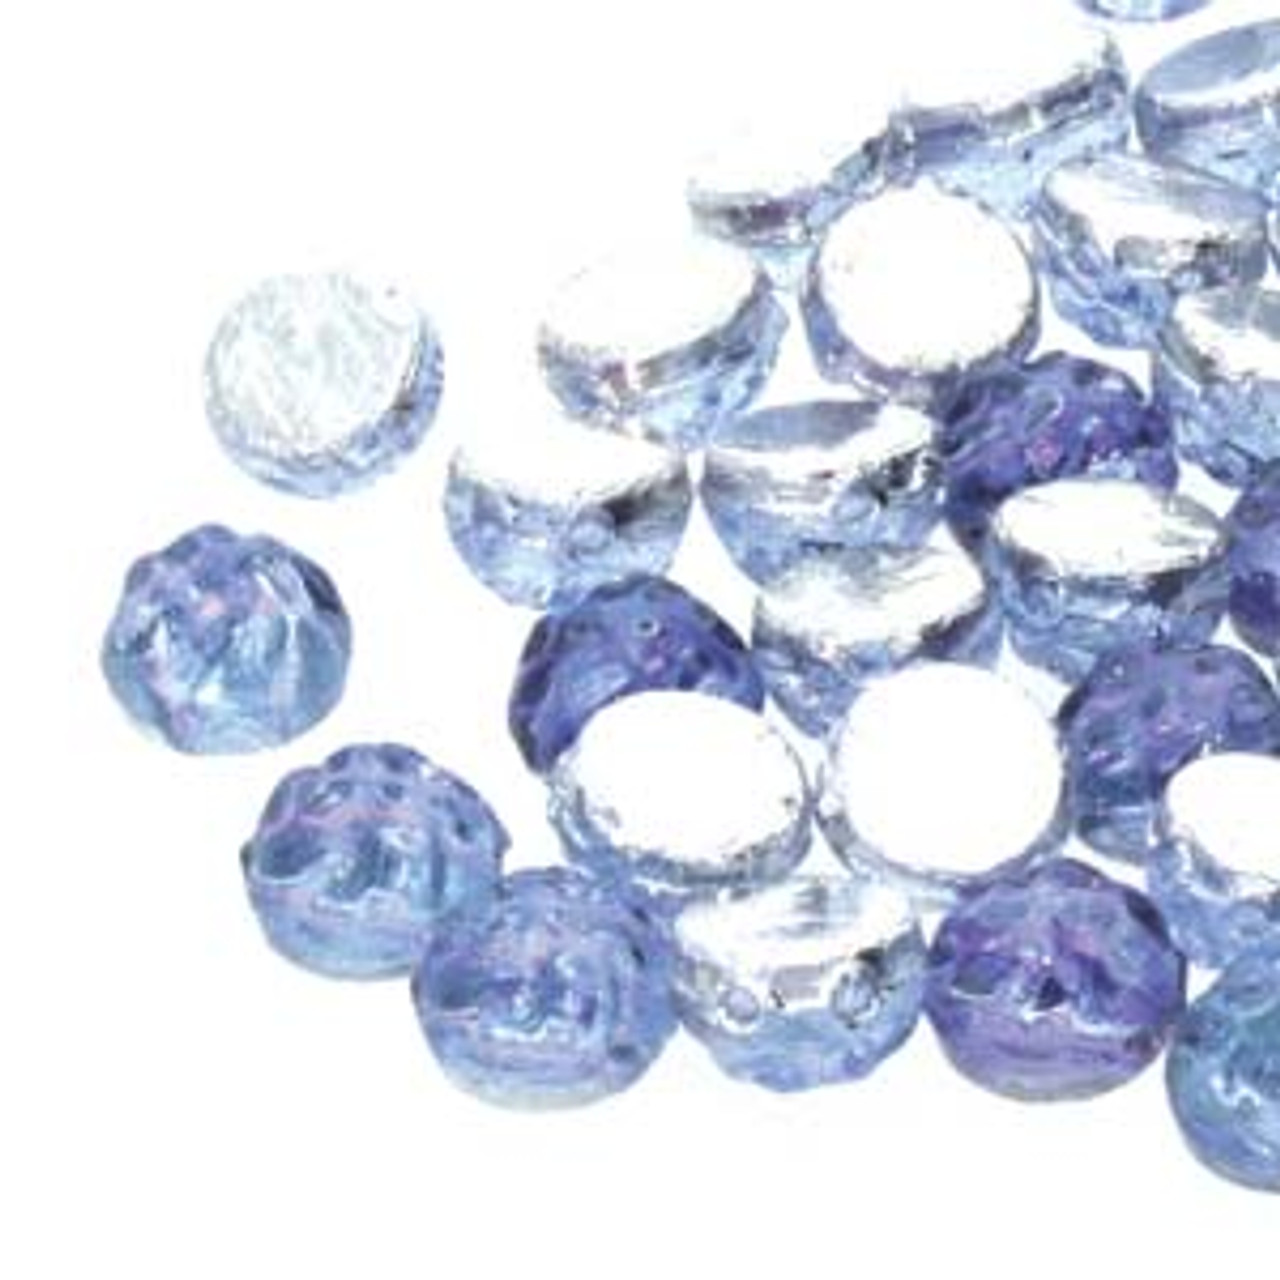 7mm Backlit Violet Ice Two Hole Cabochon (20pk) CCB0730010-26536